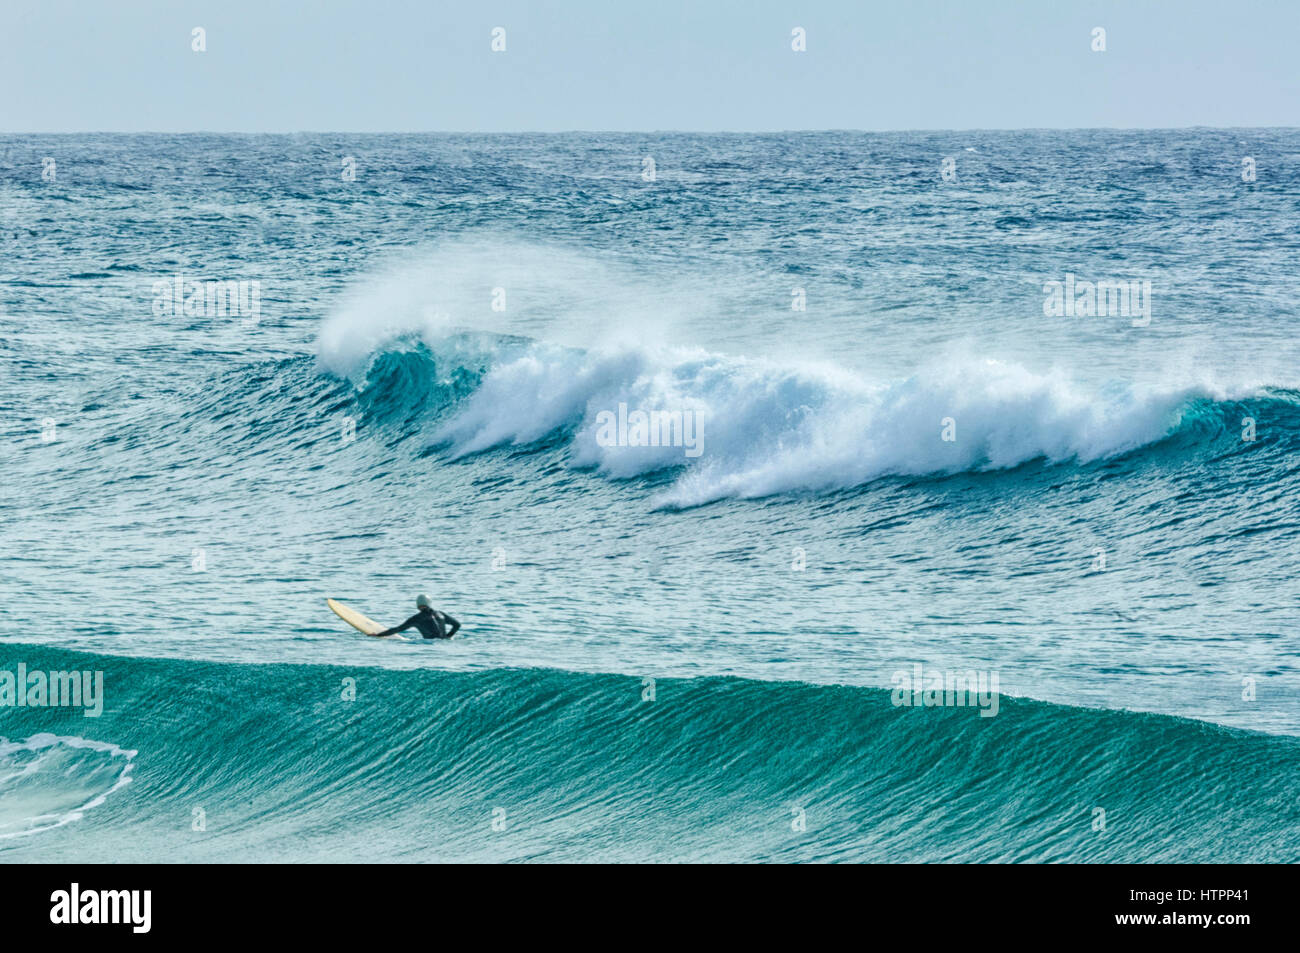 A surfer waits for the perfect wave, Dalmeny, South Coast, New South Wales, NSW, Australia - Stock Image